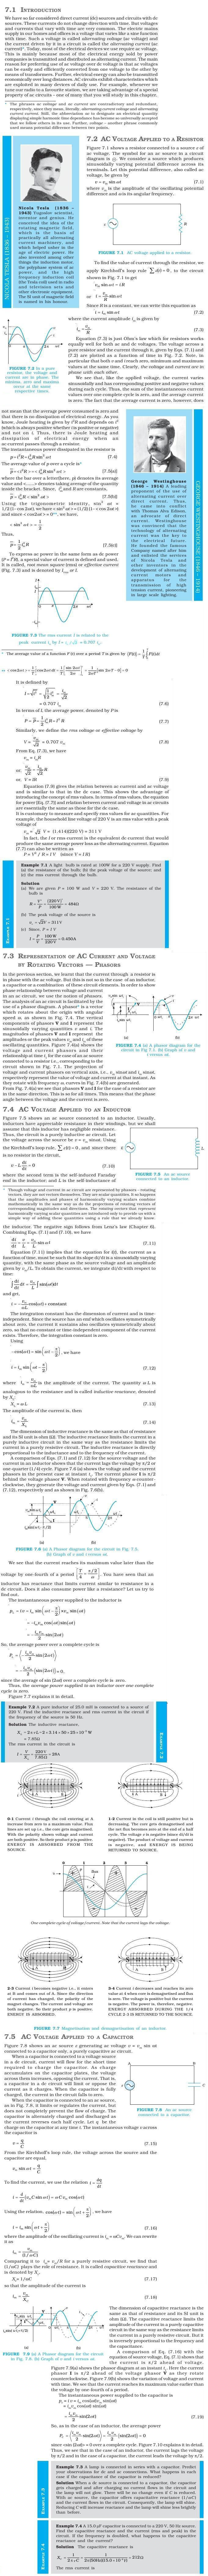 NCERT Class XII Physics Chapter 7 - Alternating Current